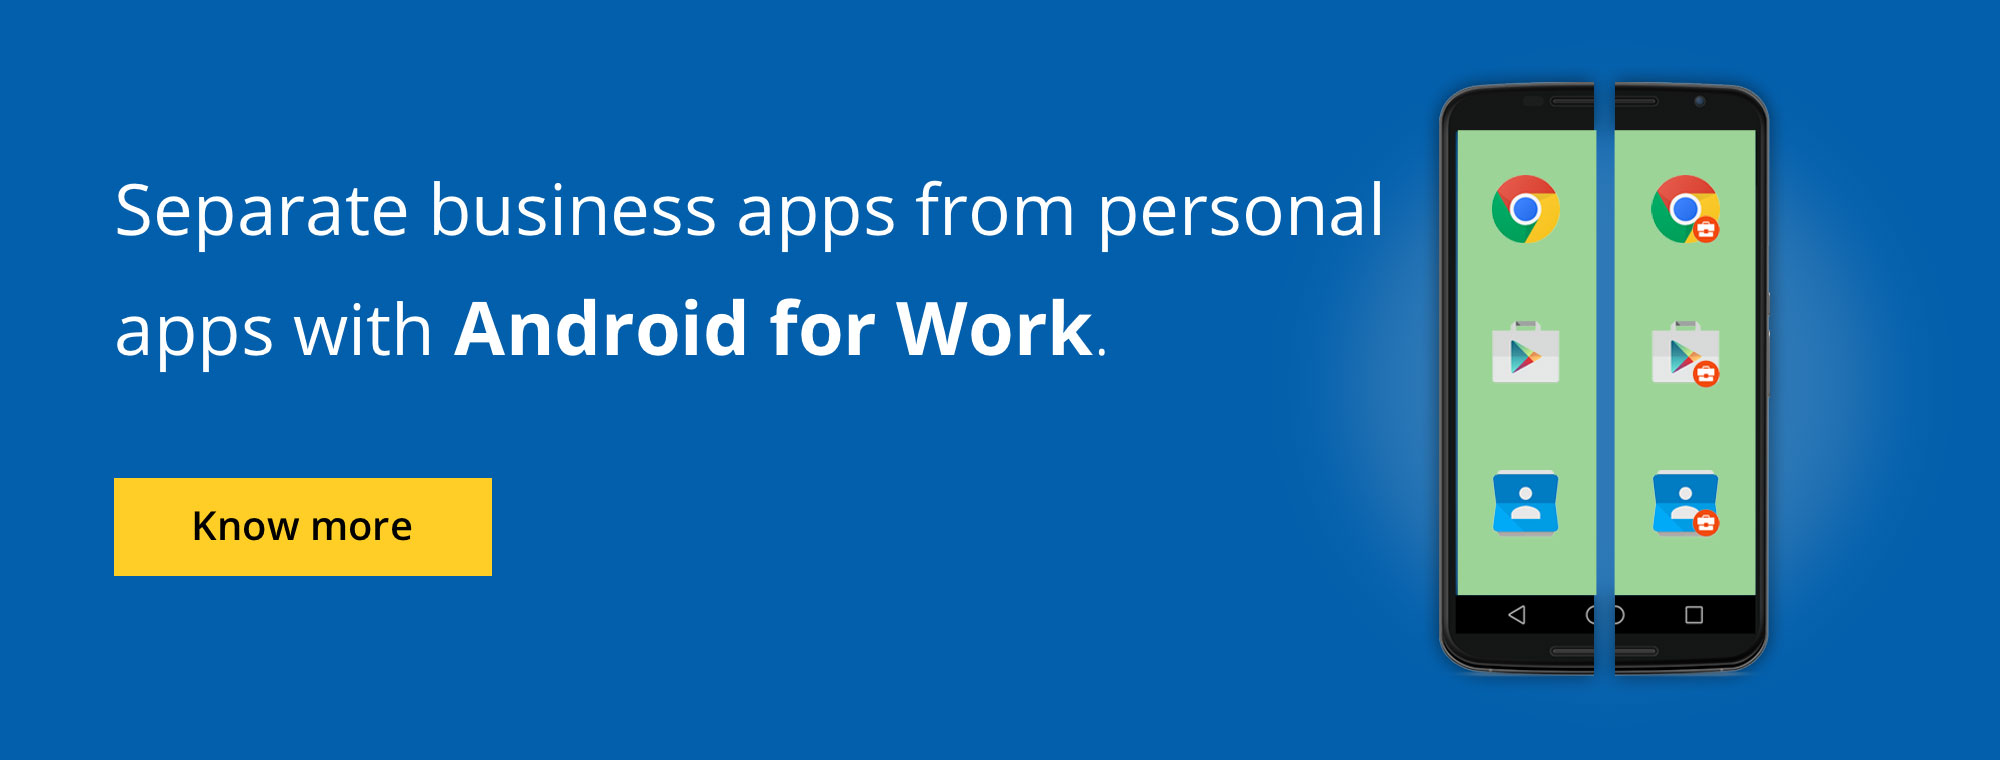 Separate business apps form personal apps with Android for Work